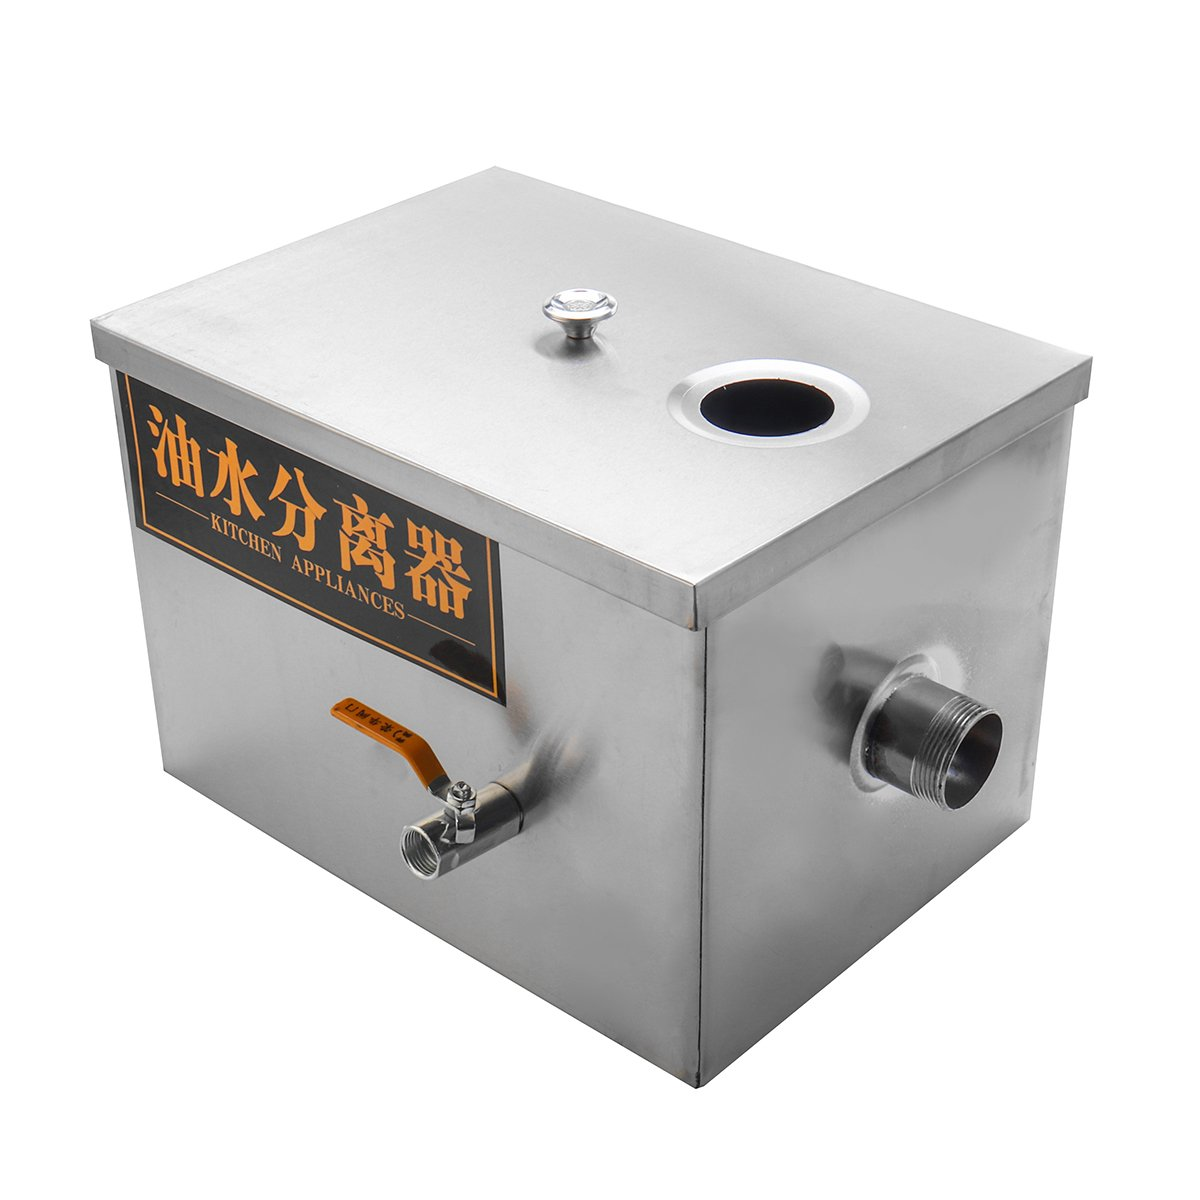 Yingte Commercial Grease Trap Interceptor,Stainless Steel